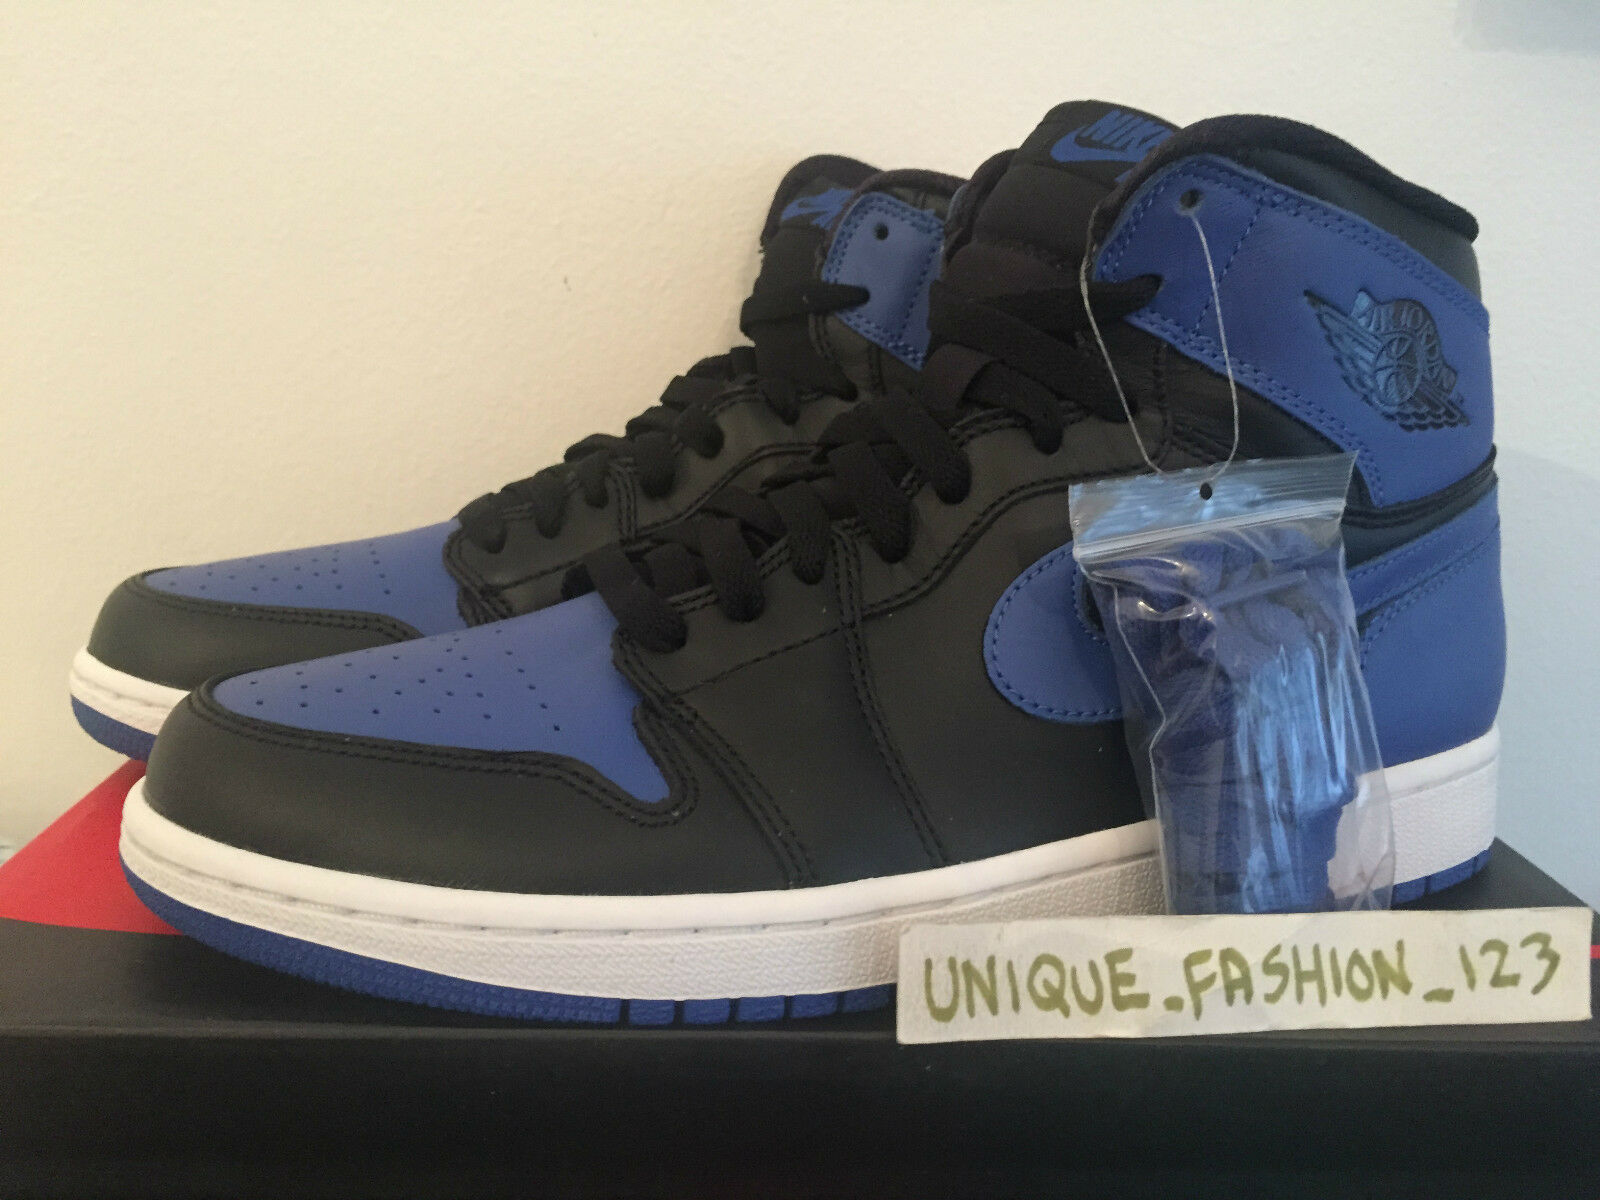 2018 NIKE AIR JORDAN 1 HIGH OG Noir ROYAL Bleu US 13 12 47.5 BRED RETRO HI AJ